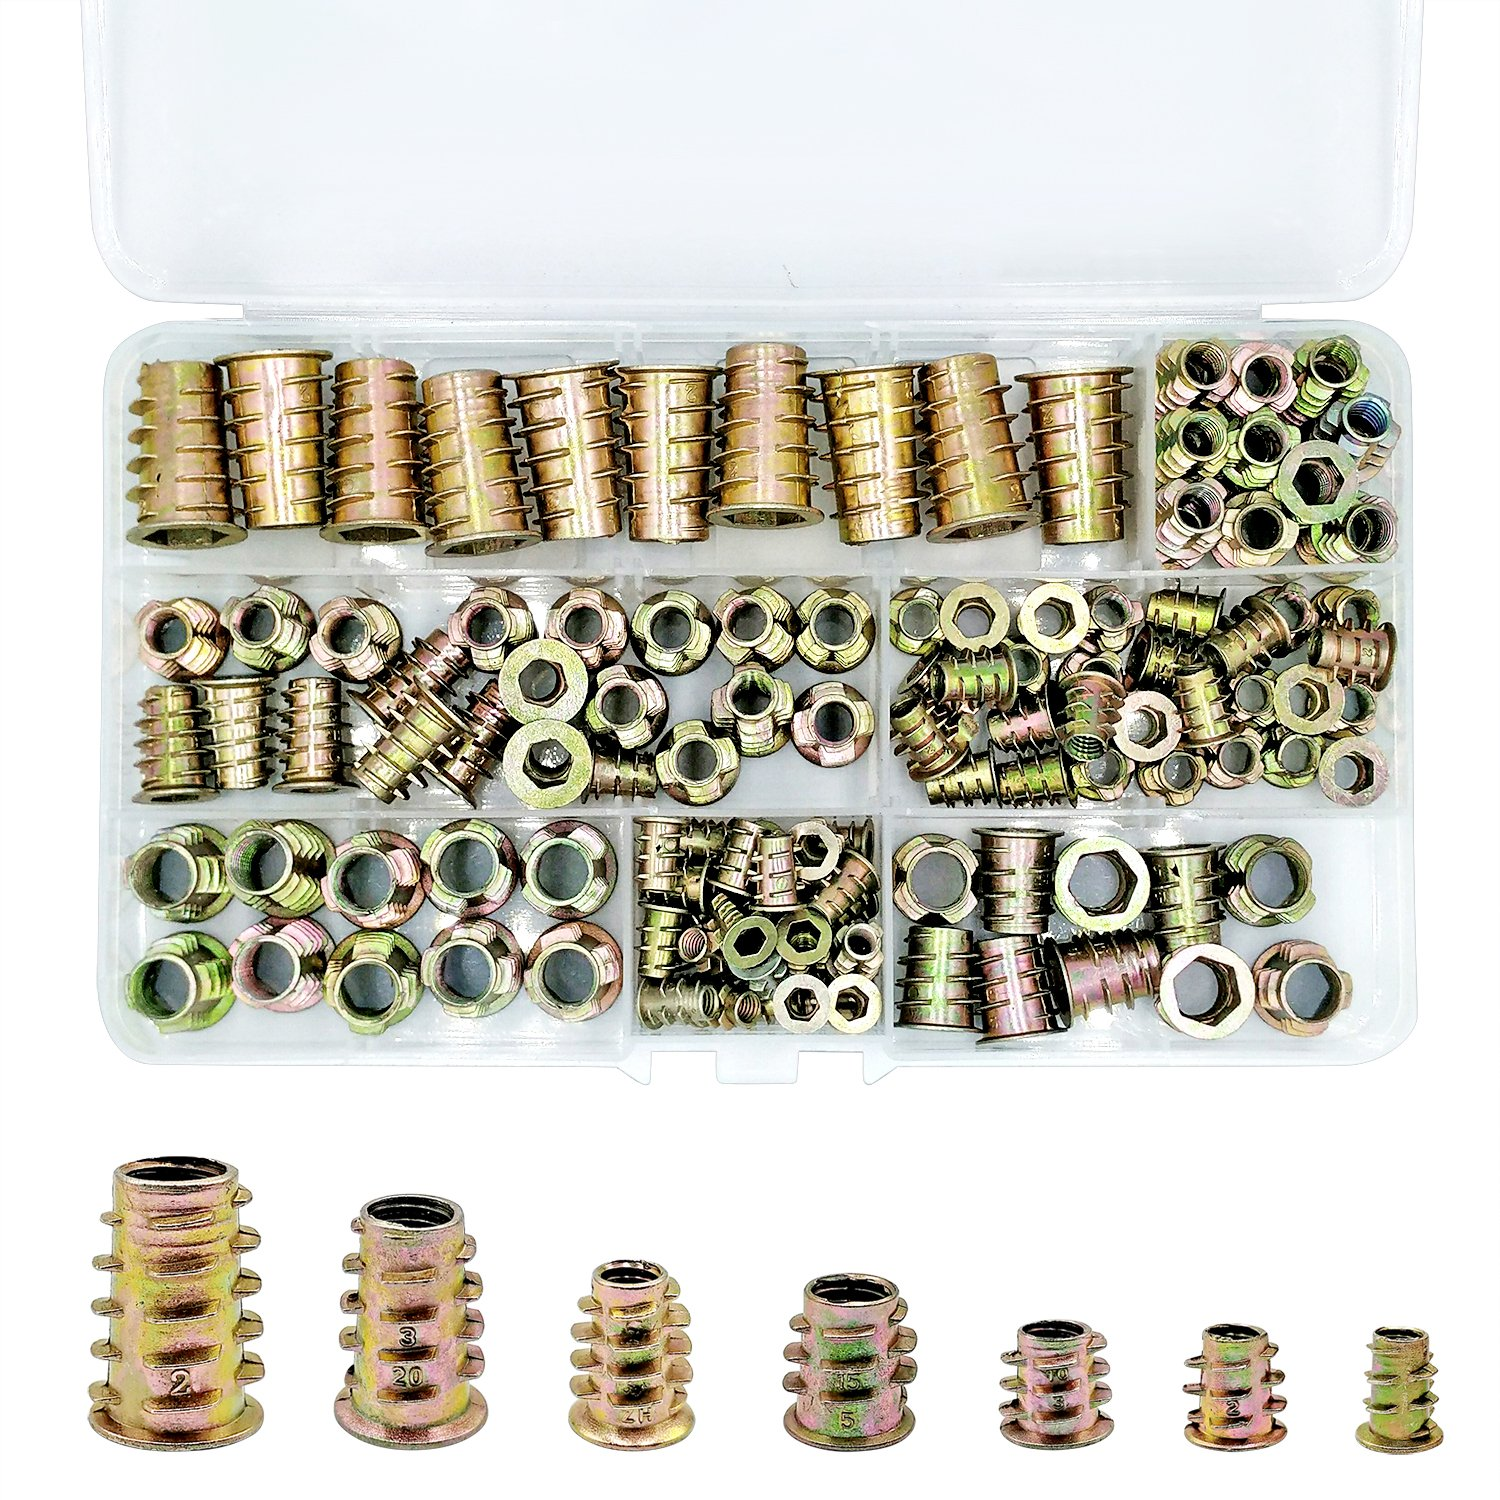 PGMJ 130 Pieces Metric Threaded Insert Nuts Assortment Tool Kit for Wood Furniture Zinc Alloy Furniture Bolt Fastener Connector Hex Socket Screw Inserts (M4/ M5/ M6/ M8/ M10)